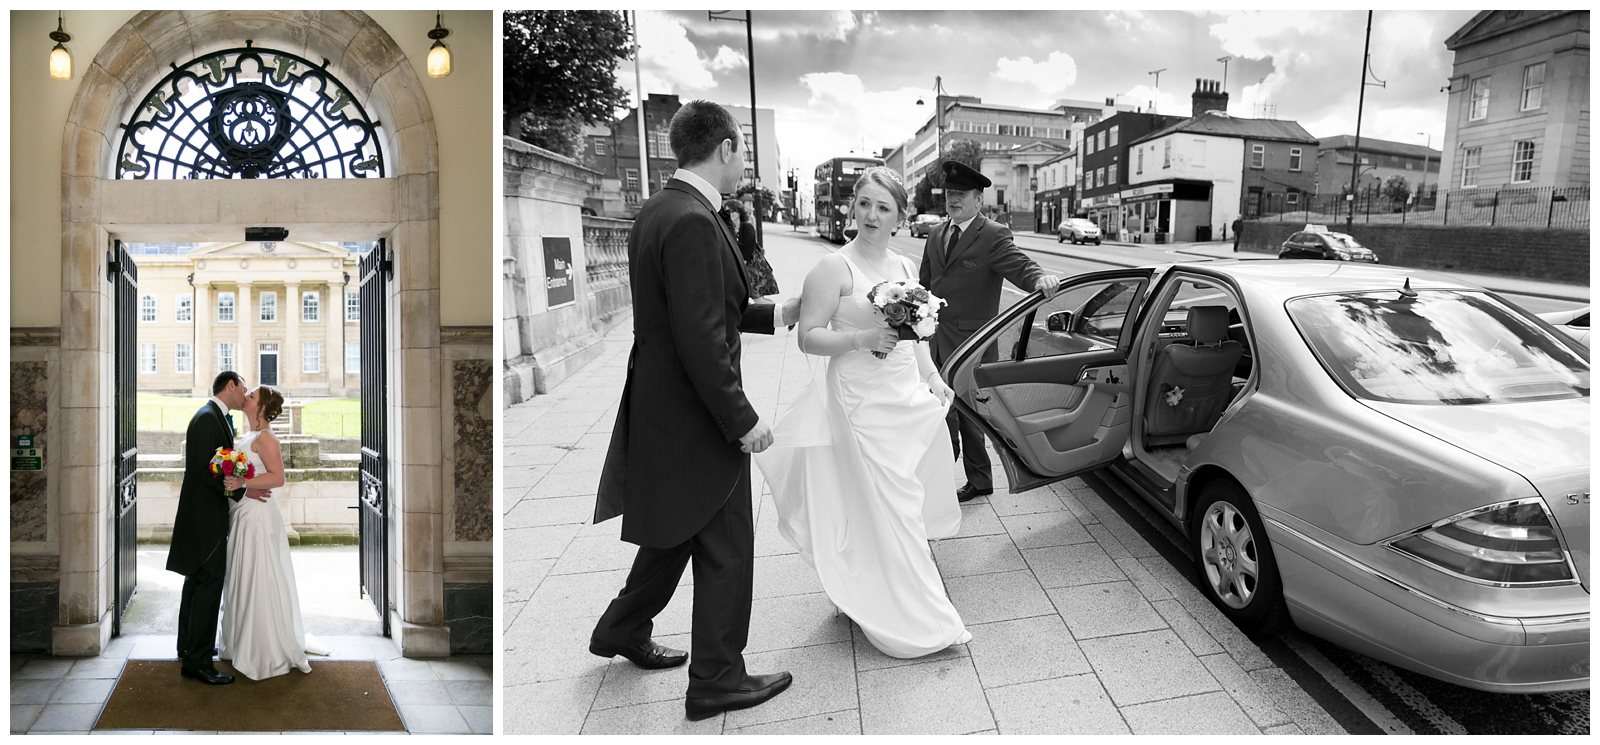 Natural wedding photography at Stockport Town Hall